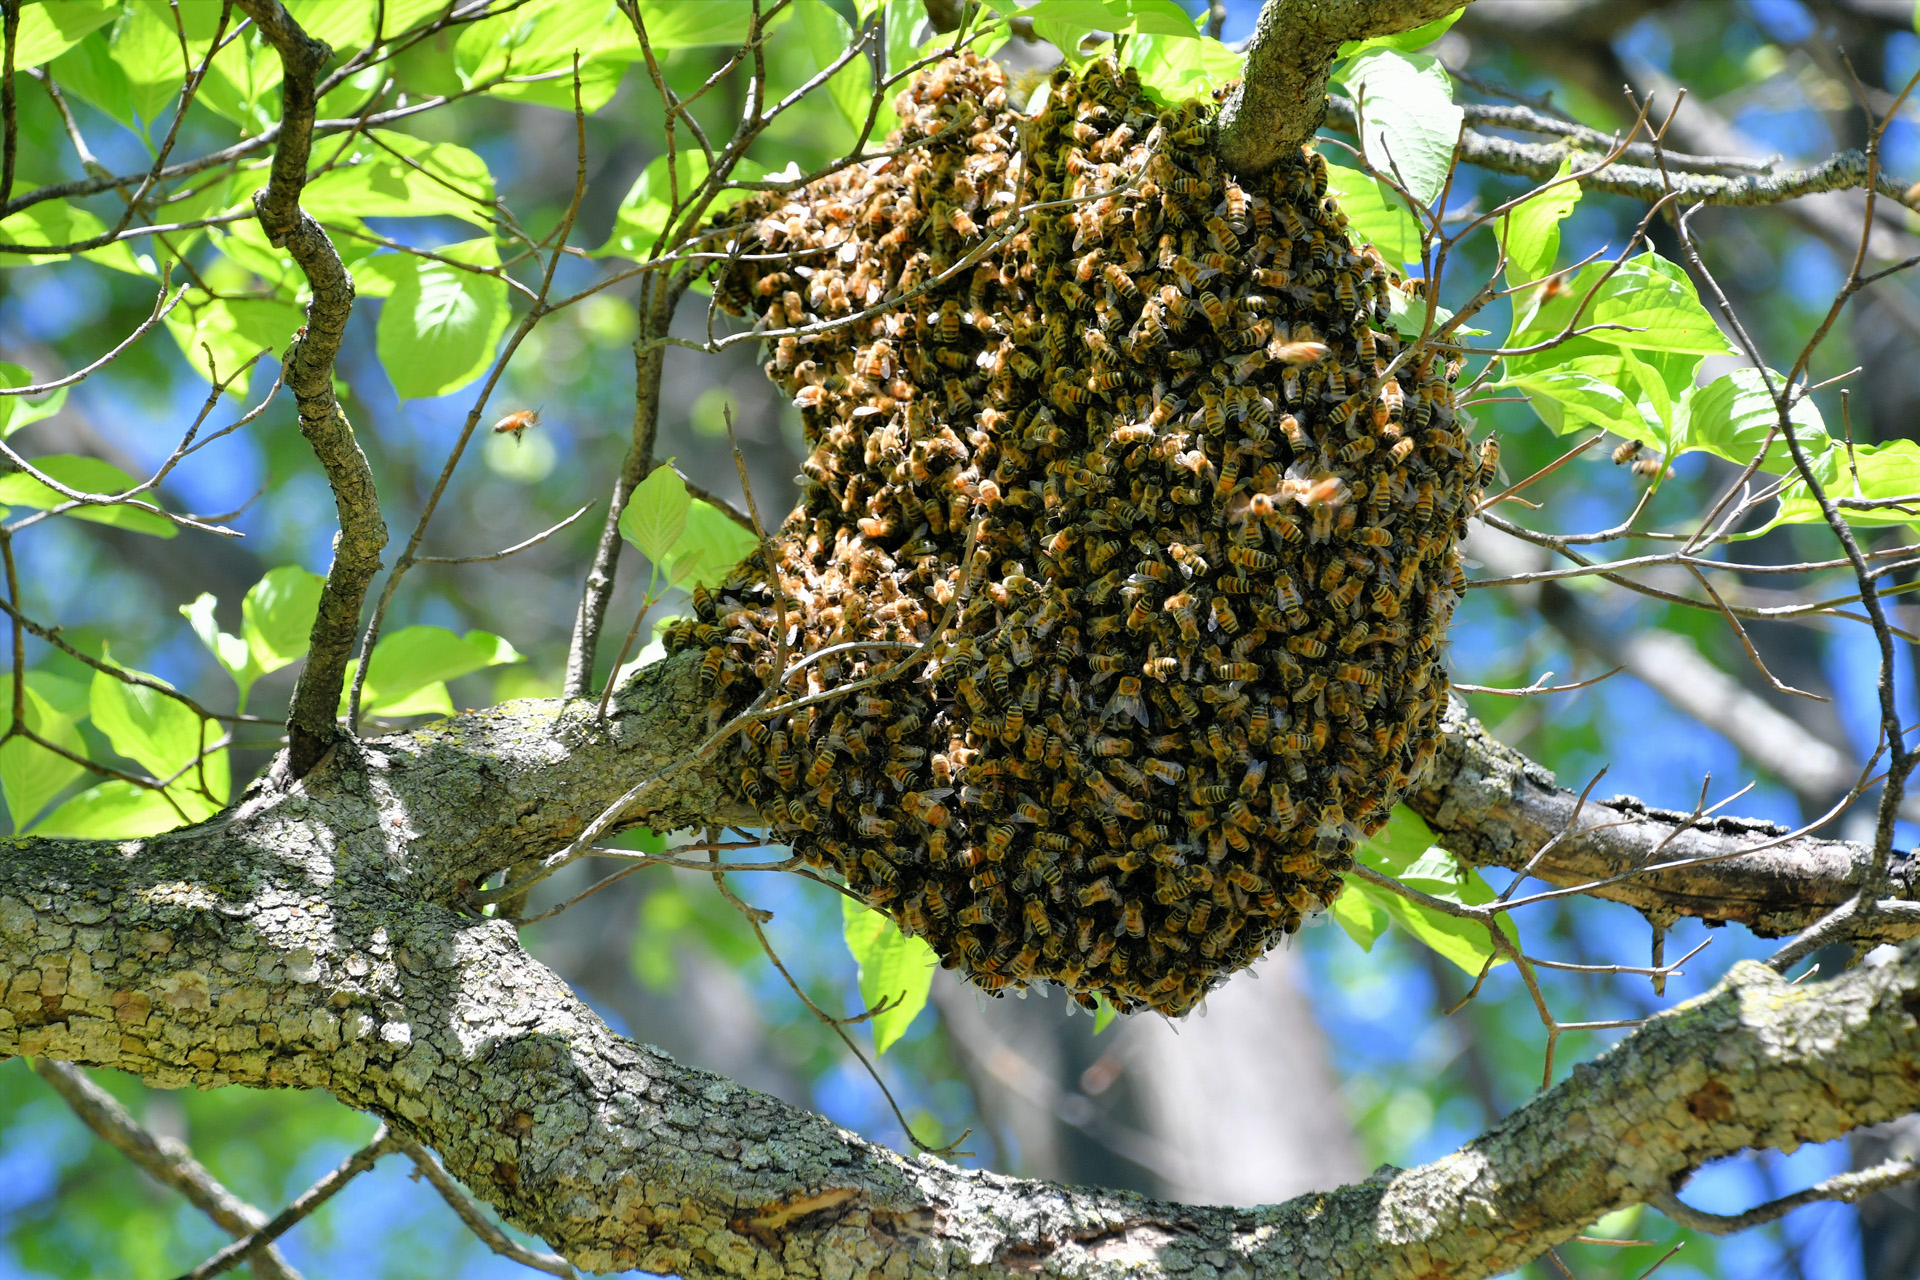 Swarm Removal in New Hanover County